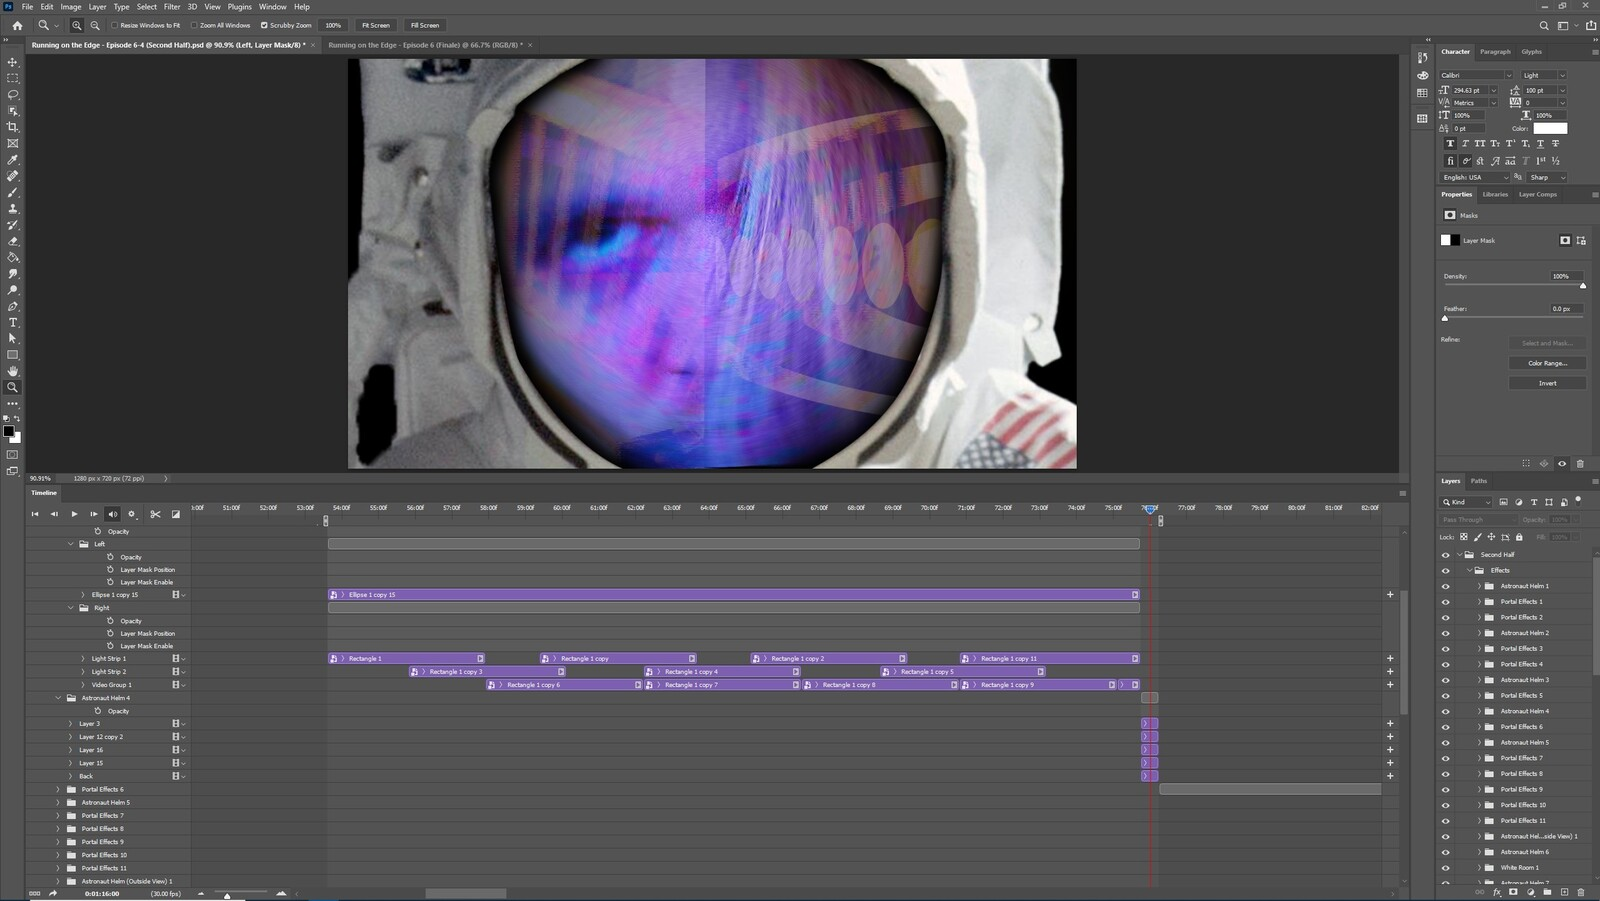 """The """"2020: A Time Oddity, Part 3"""" visual effect within Photoshop video editor"""